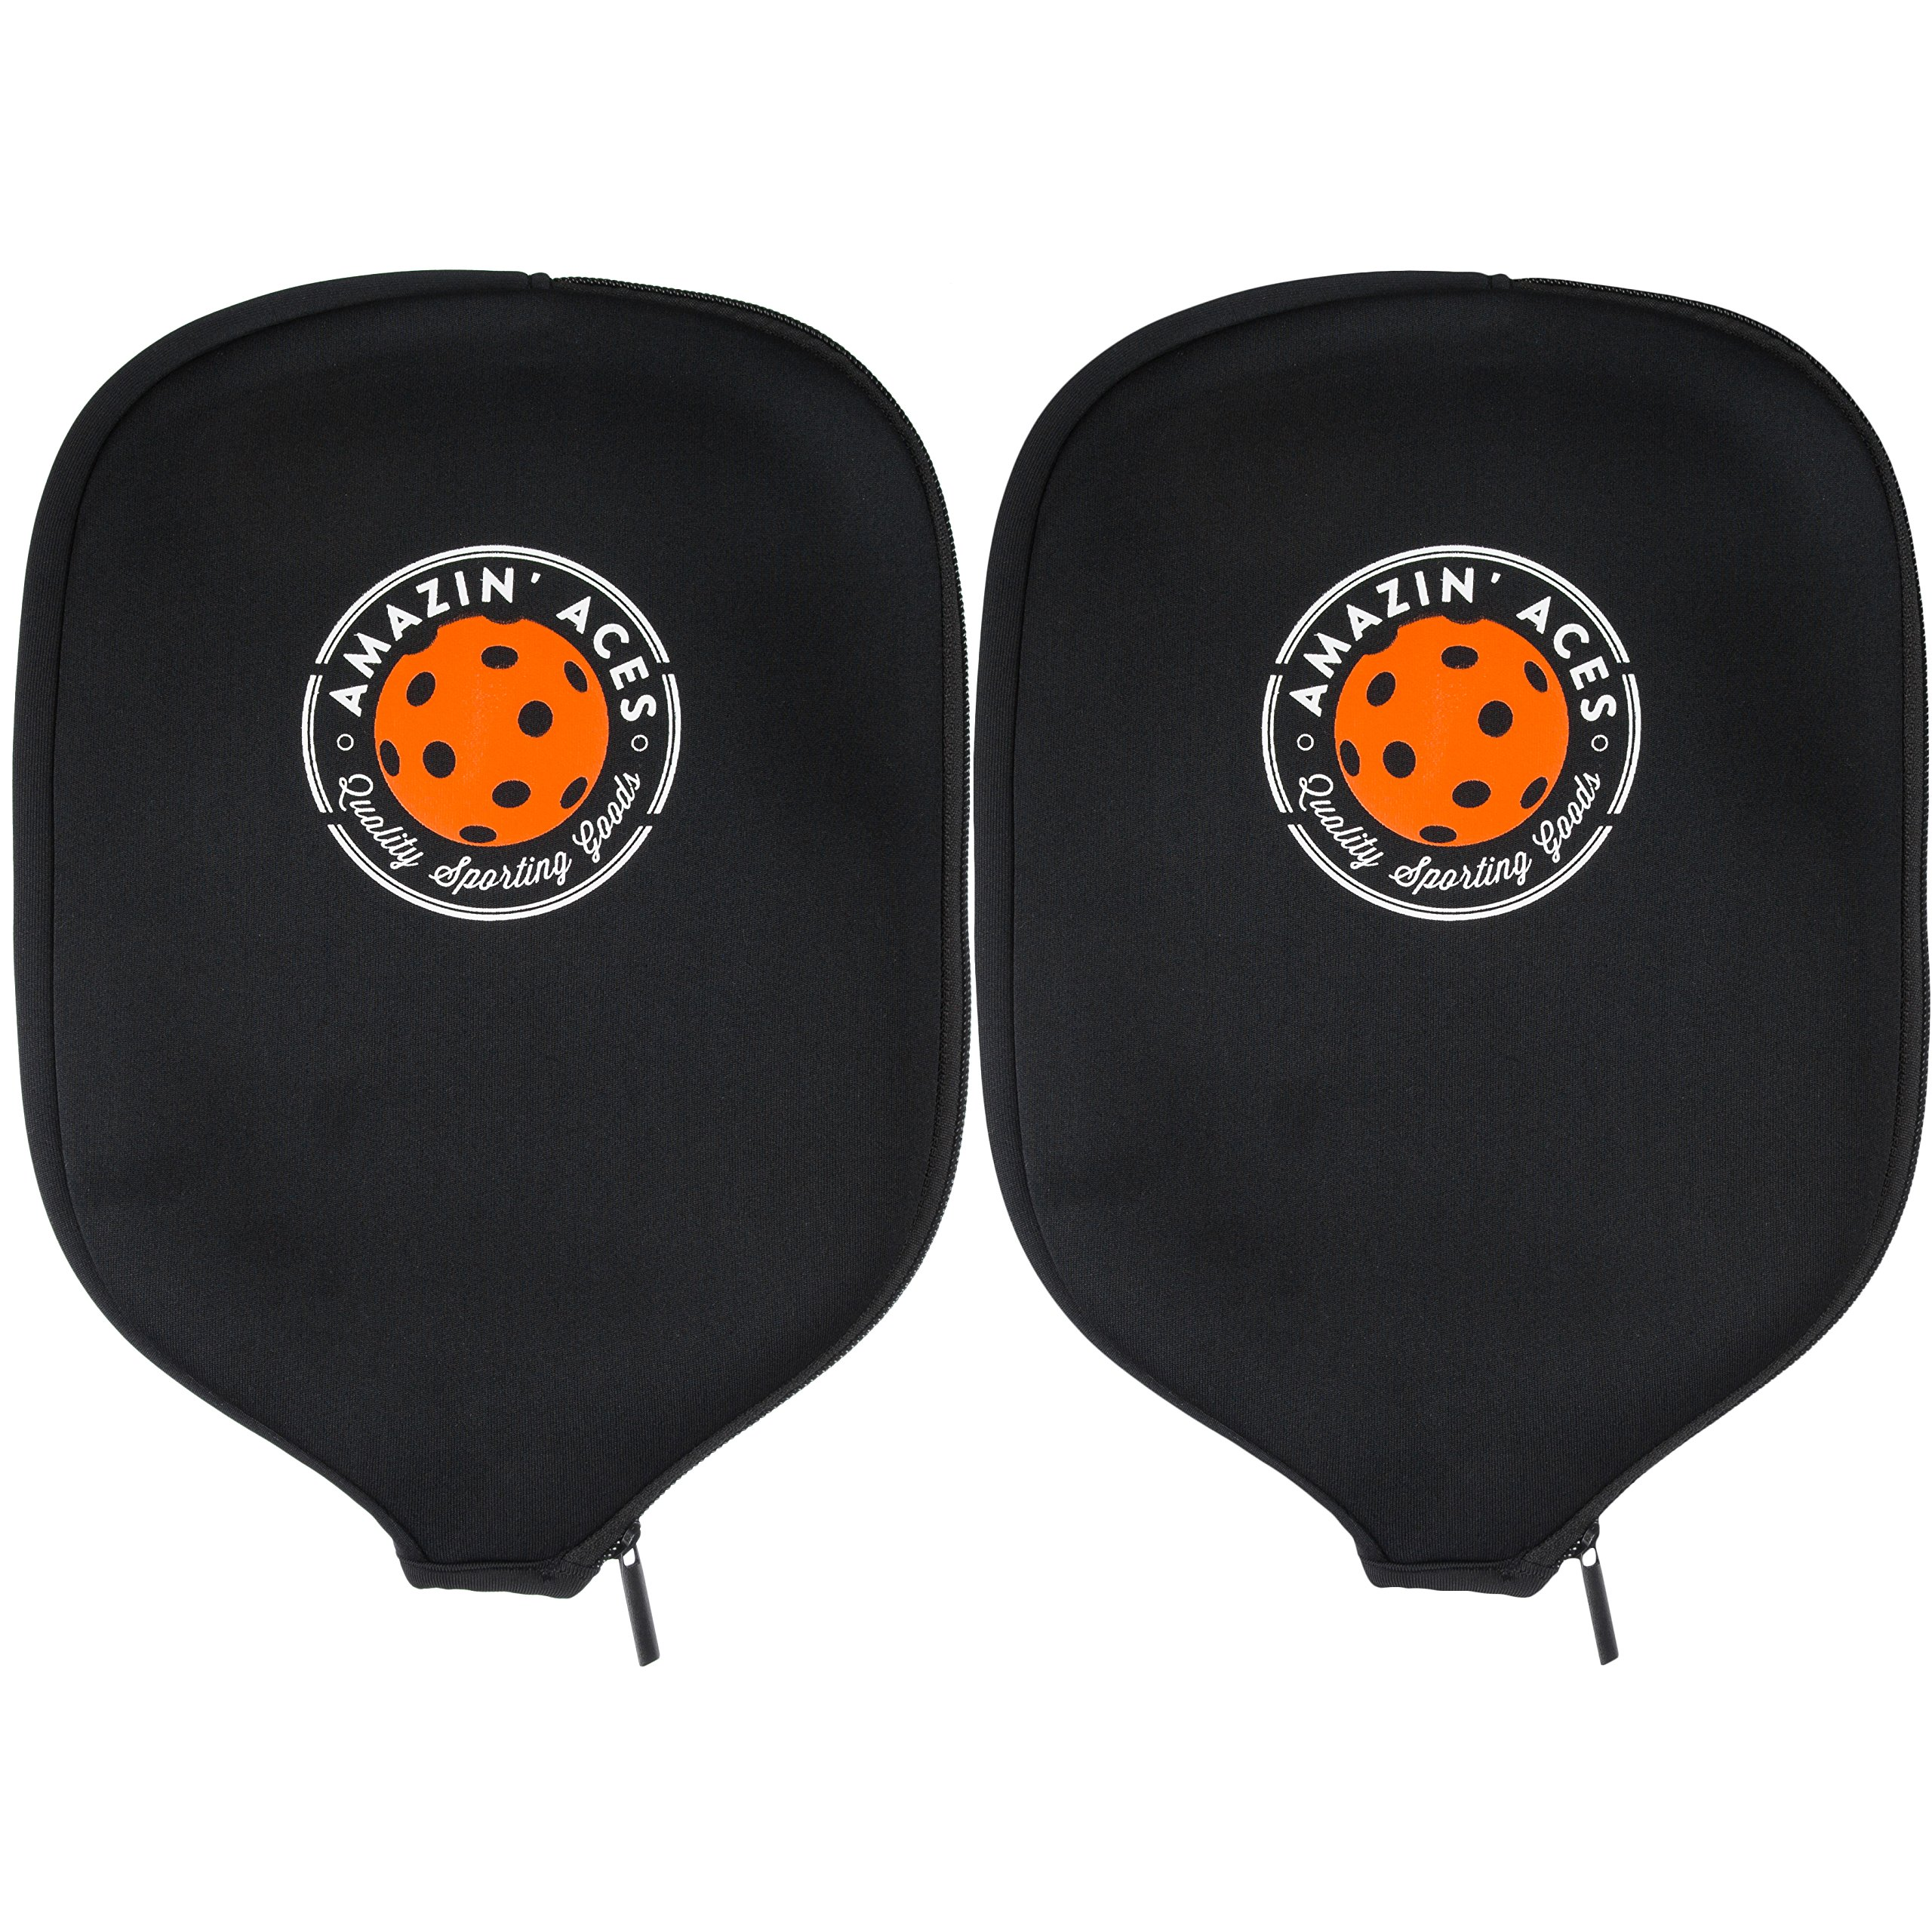 Amazin' Aces Pickleball Paddle Covers Set of Two Cases | Neoprene Cover Fits Most Rackets | Sleeves Protect Your Paddles from Scrapes & Dings